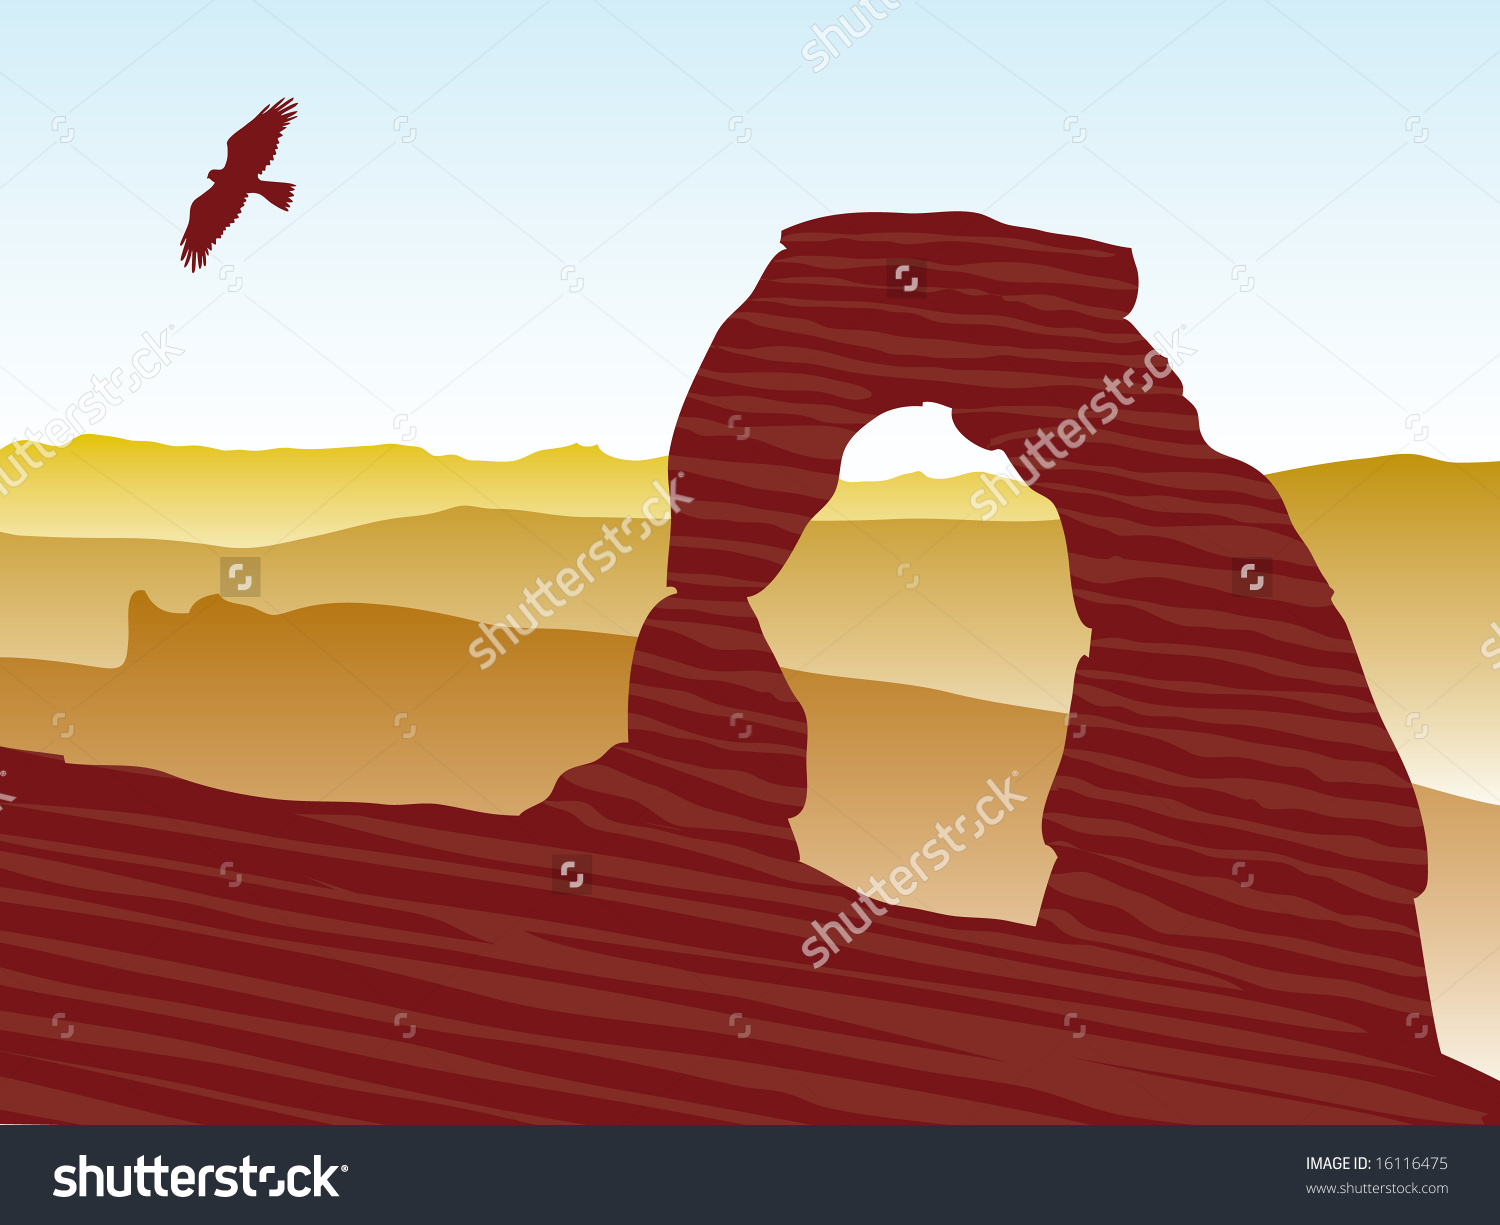 Moab clipart 20 free Cliparts | Download images on ...  |Clipart National Park Utah